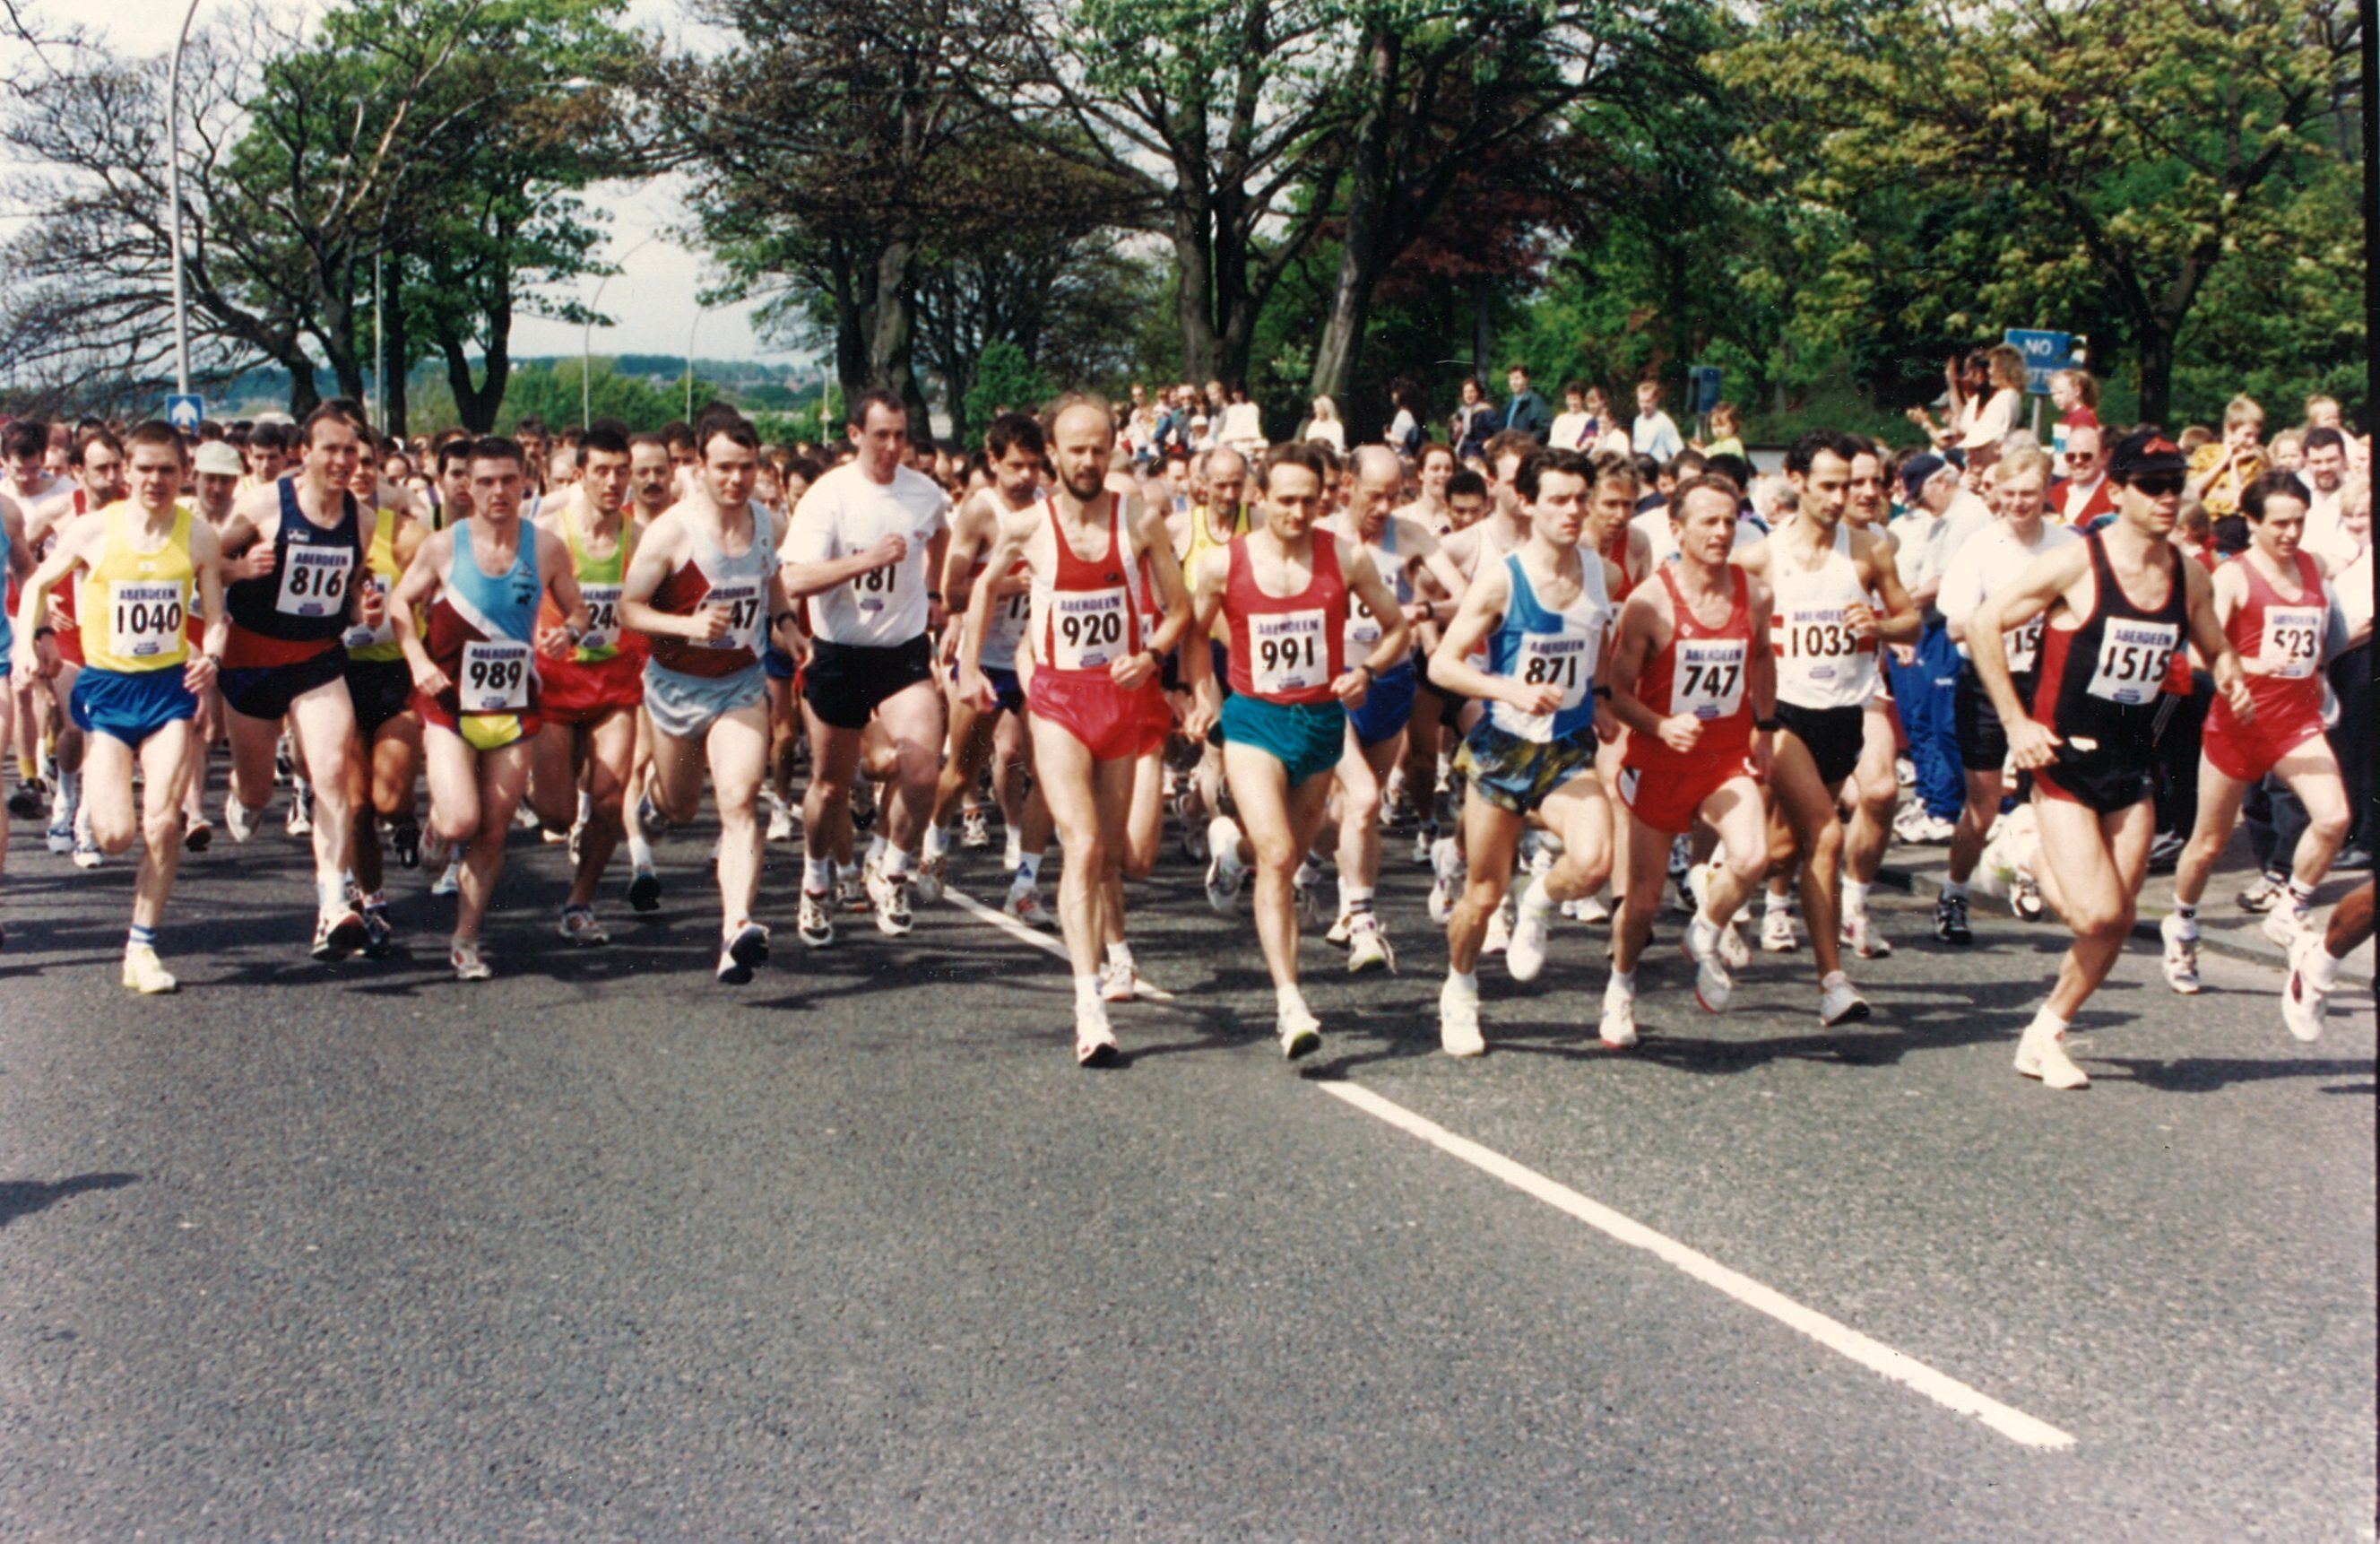 The start of the 10k in 1997